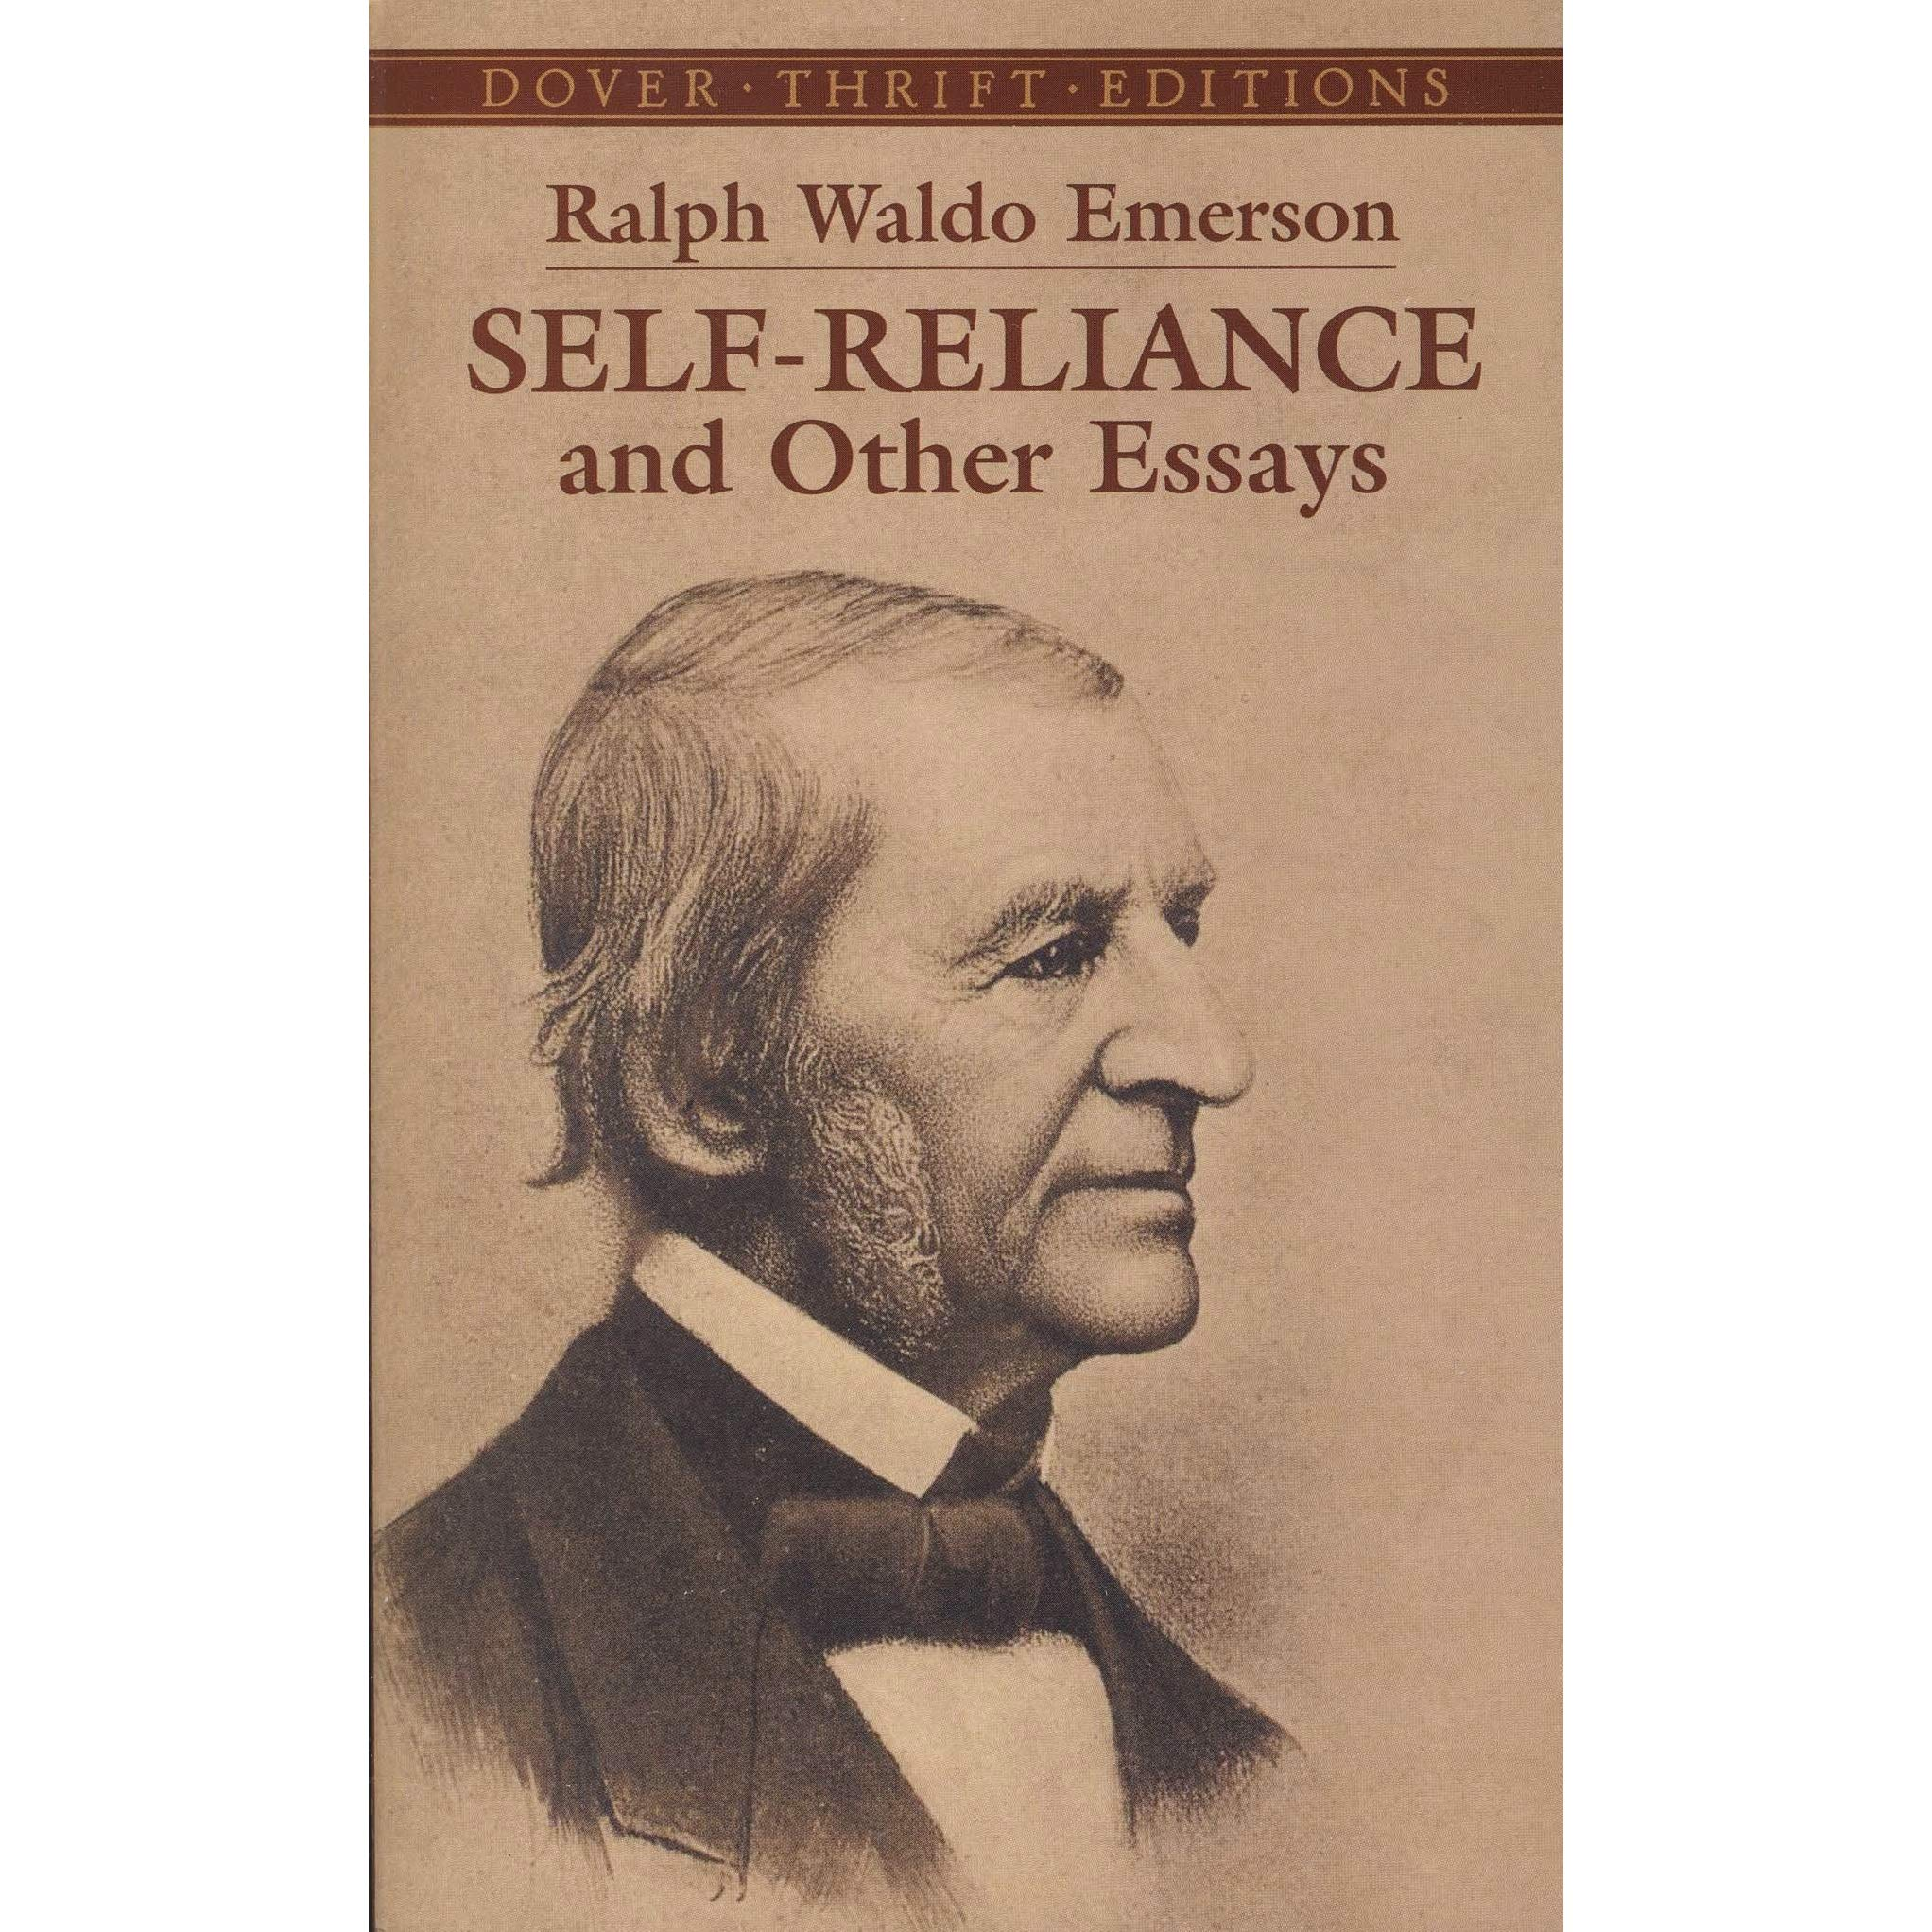 002 Emerson Self Reliance Essay Example  Uy2044 Ss2044 Staggering Summary Translated Into Modern English AnalysisFull